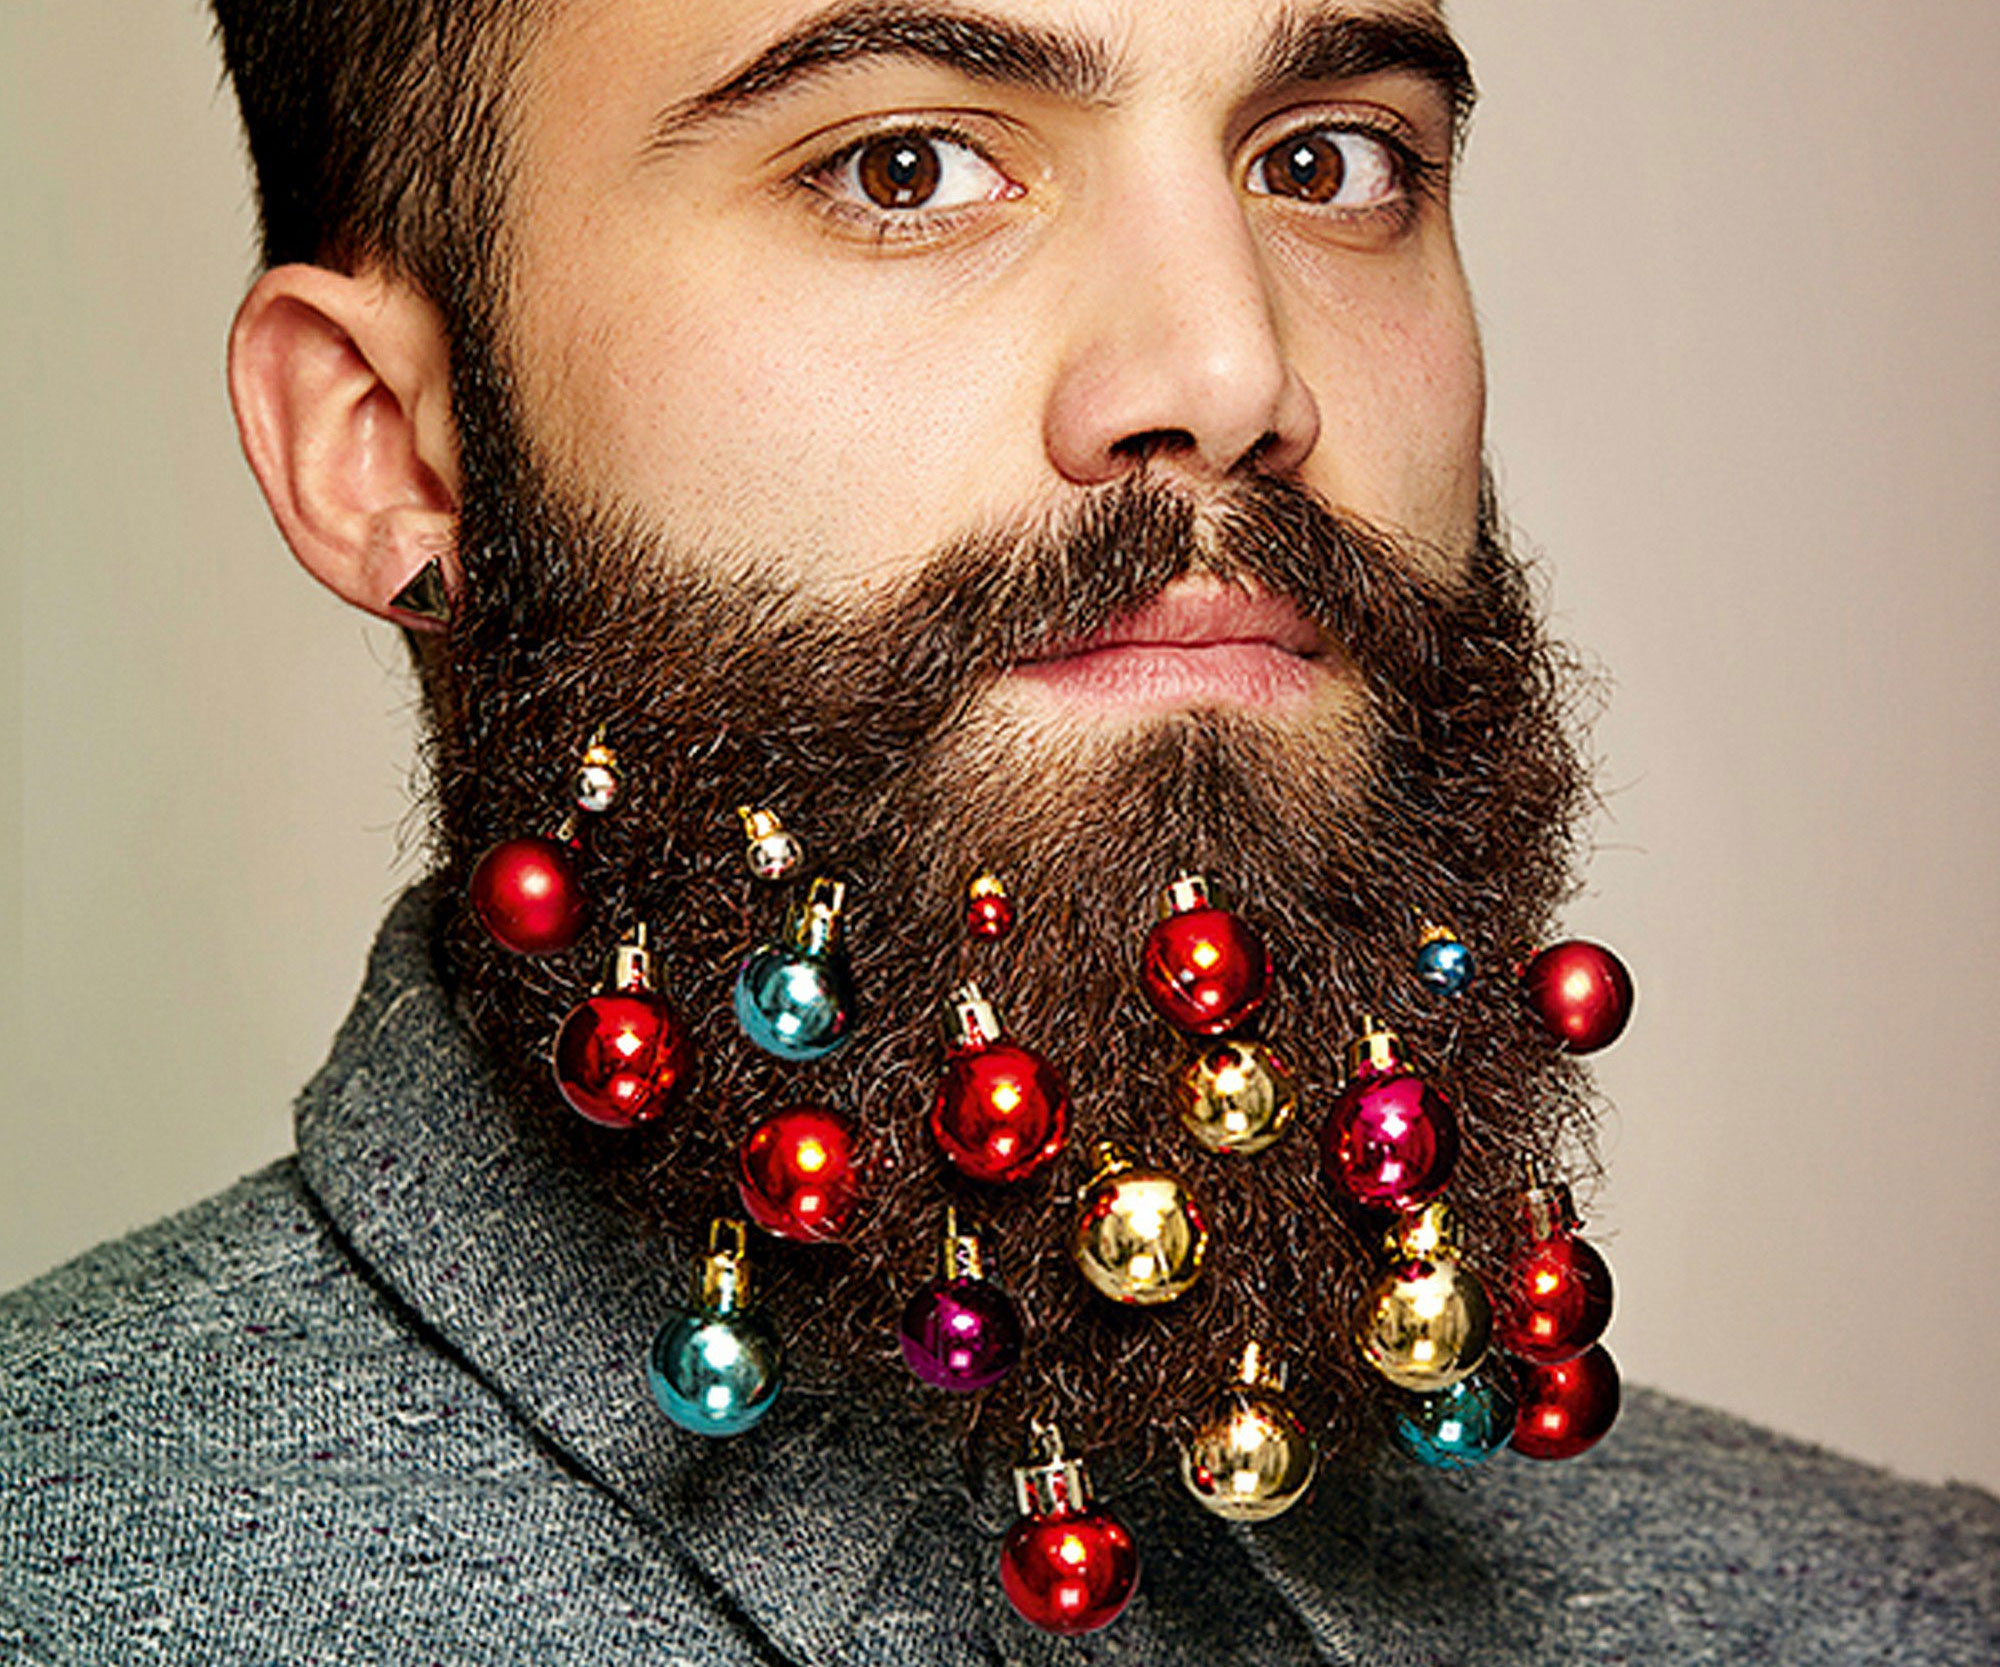 Christmas Beard Decorations Beard Christmas Ornaments